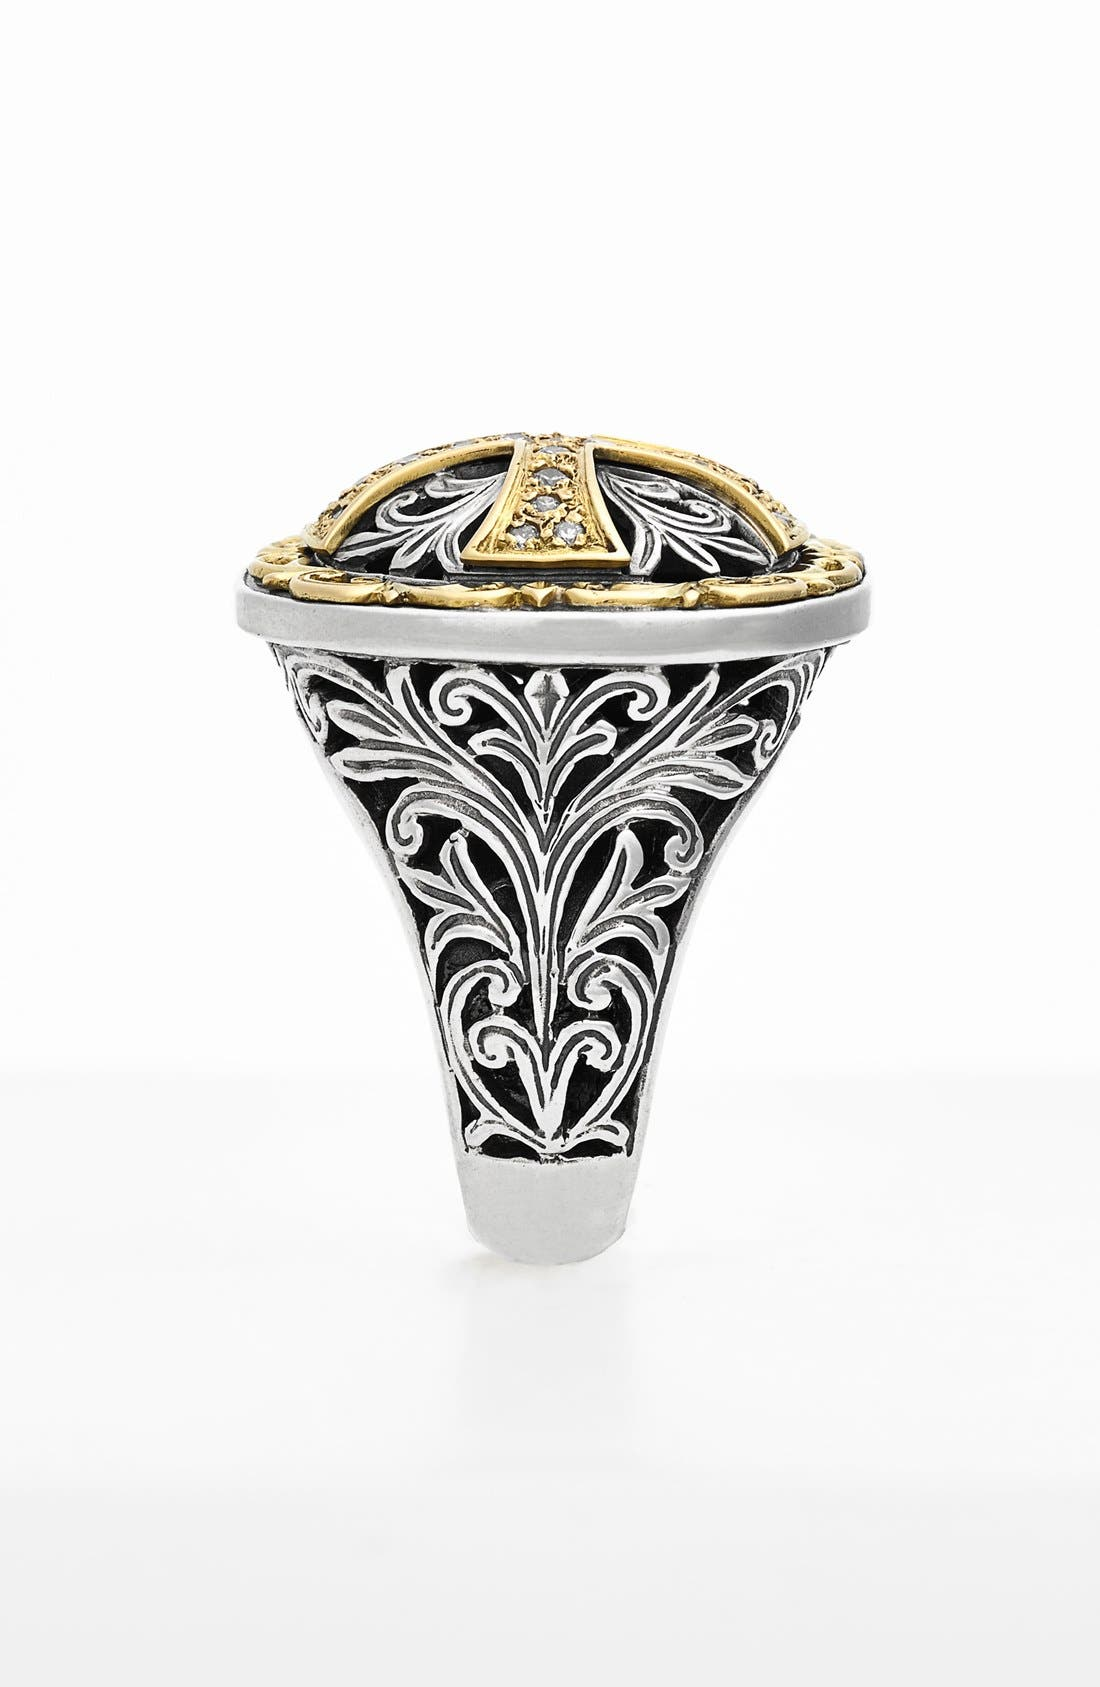 'Diamond Classics' Diamond Cross Two-Tone Ring,                             Alternate thumbnail 2, color,                             SILVER/ GOLD